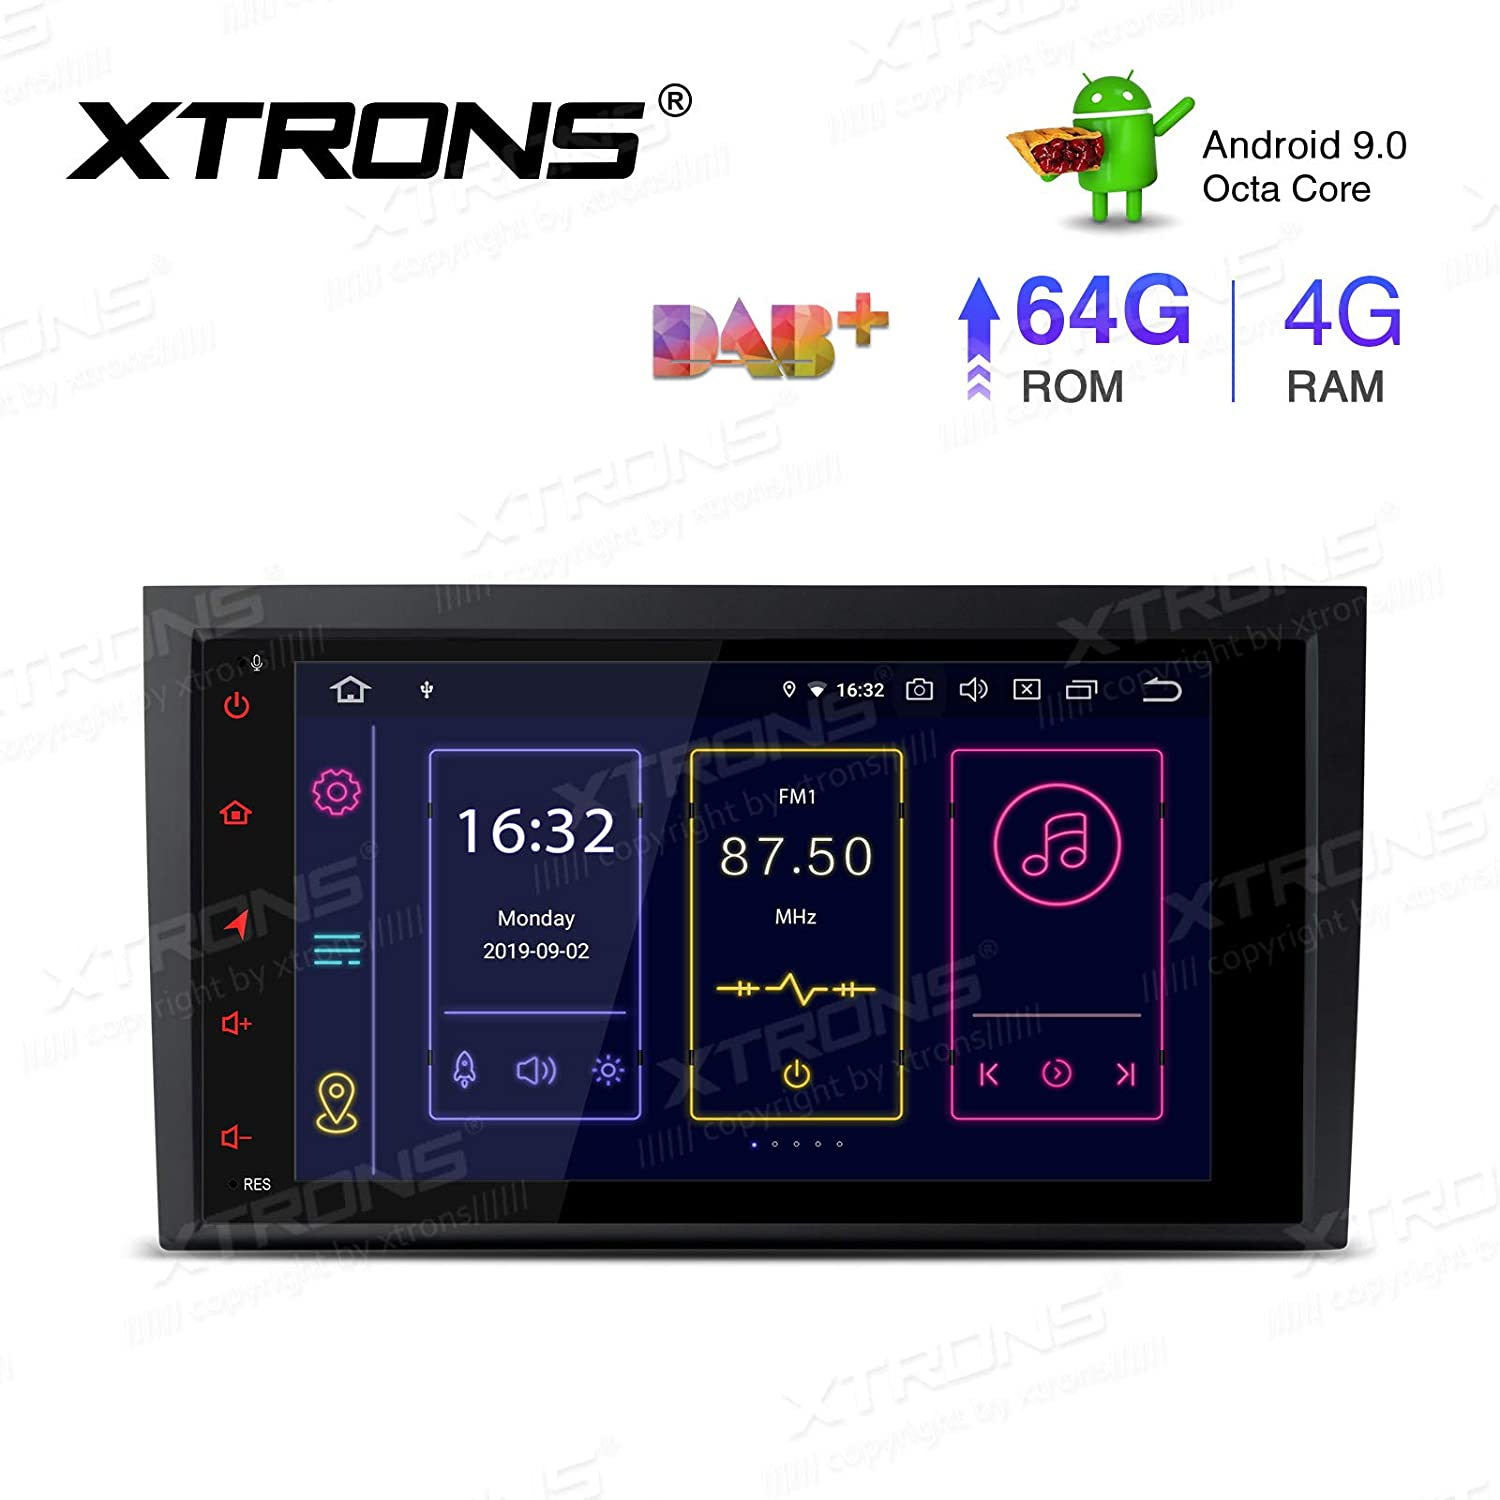 XTRONS 8 Inch Android 9.0 Car Stereo Radio Player Octa Core 4G RAM 64G ROM GPS Navigation Multi-Touch Screen Video Player Head Unit Supports Bluetooth 5.0 WiFi OBD2 DVR TPMS Backup Camera for Audi A4